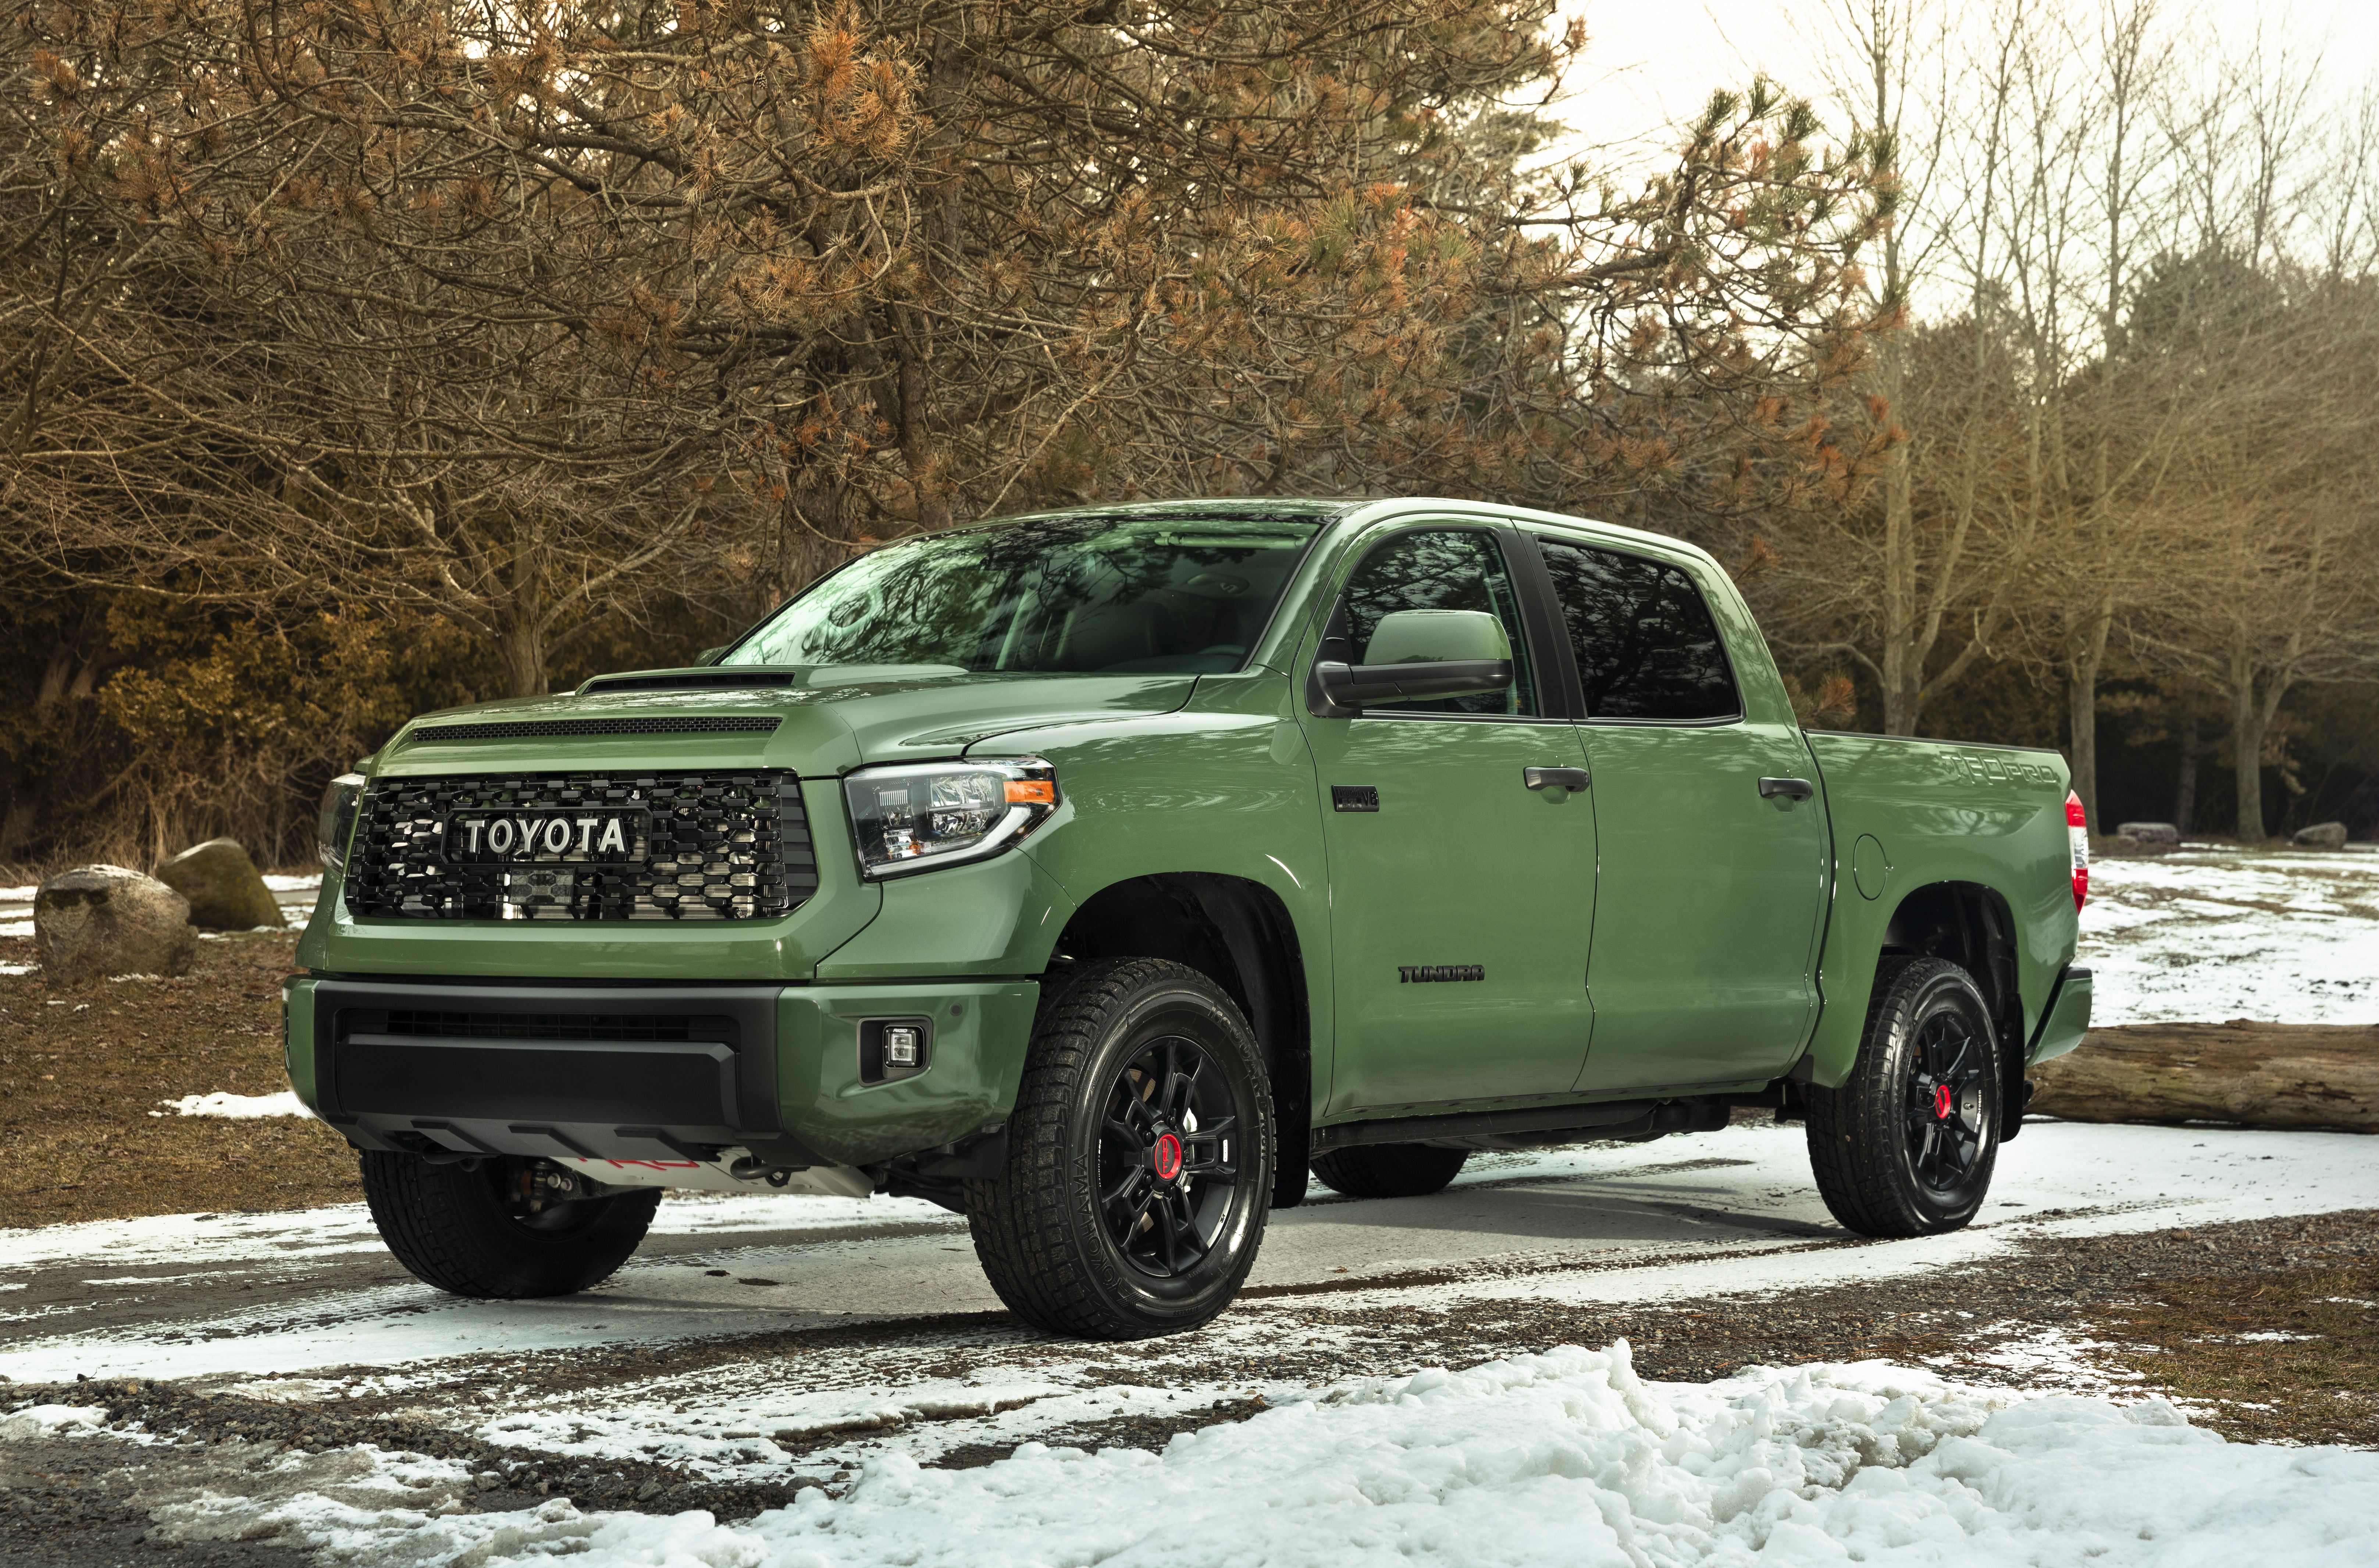 Rugged And Reliable The 2020 Toyota Tundra Is The Full Size Pickup Truck That S Always Up To The Task Aug 21 2019